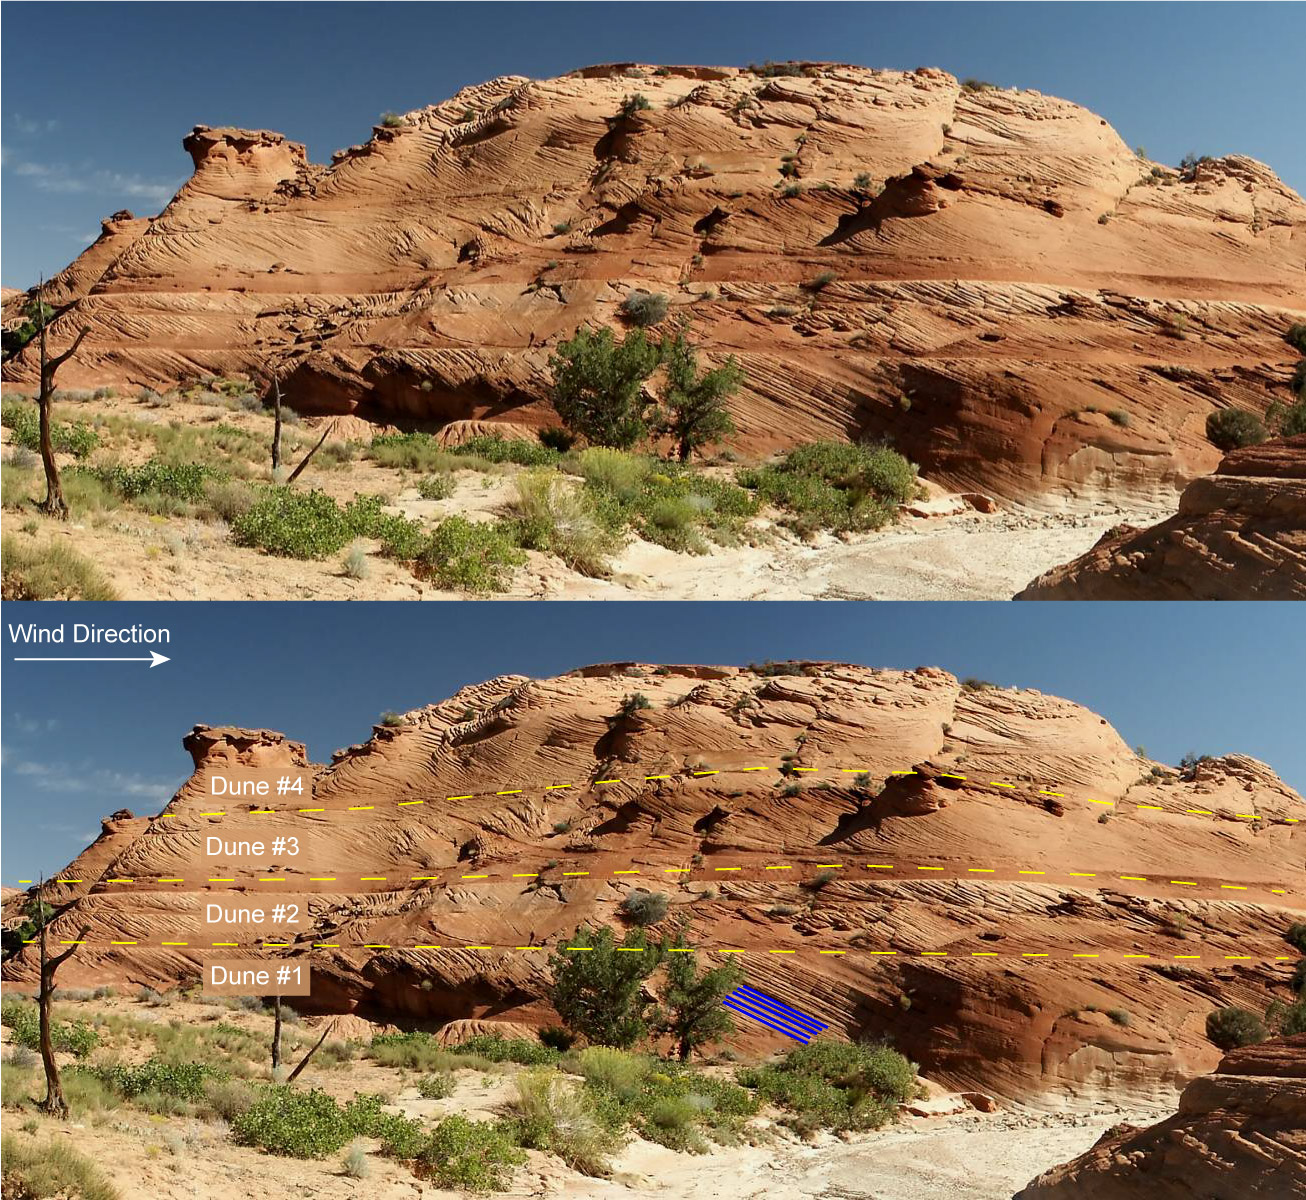 Both images are of red sedimentary rocks with cross-bedding from the migration of dunes. The lower image has markings showing the dunes and cross-beds.